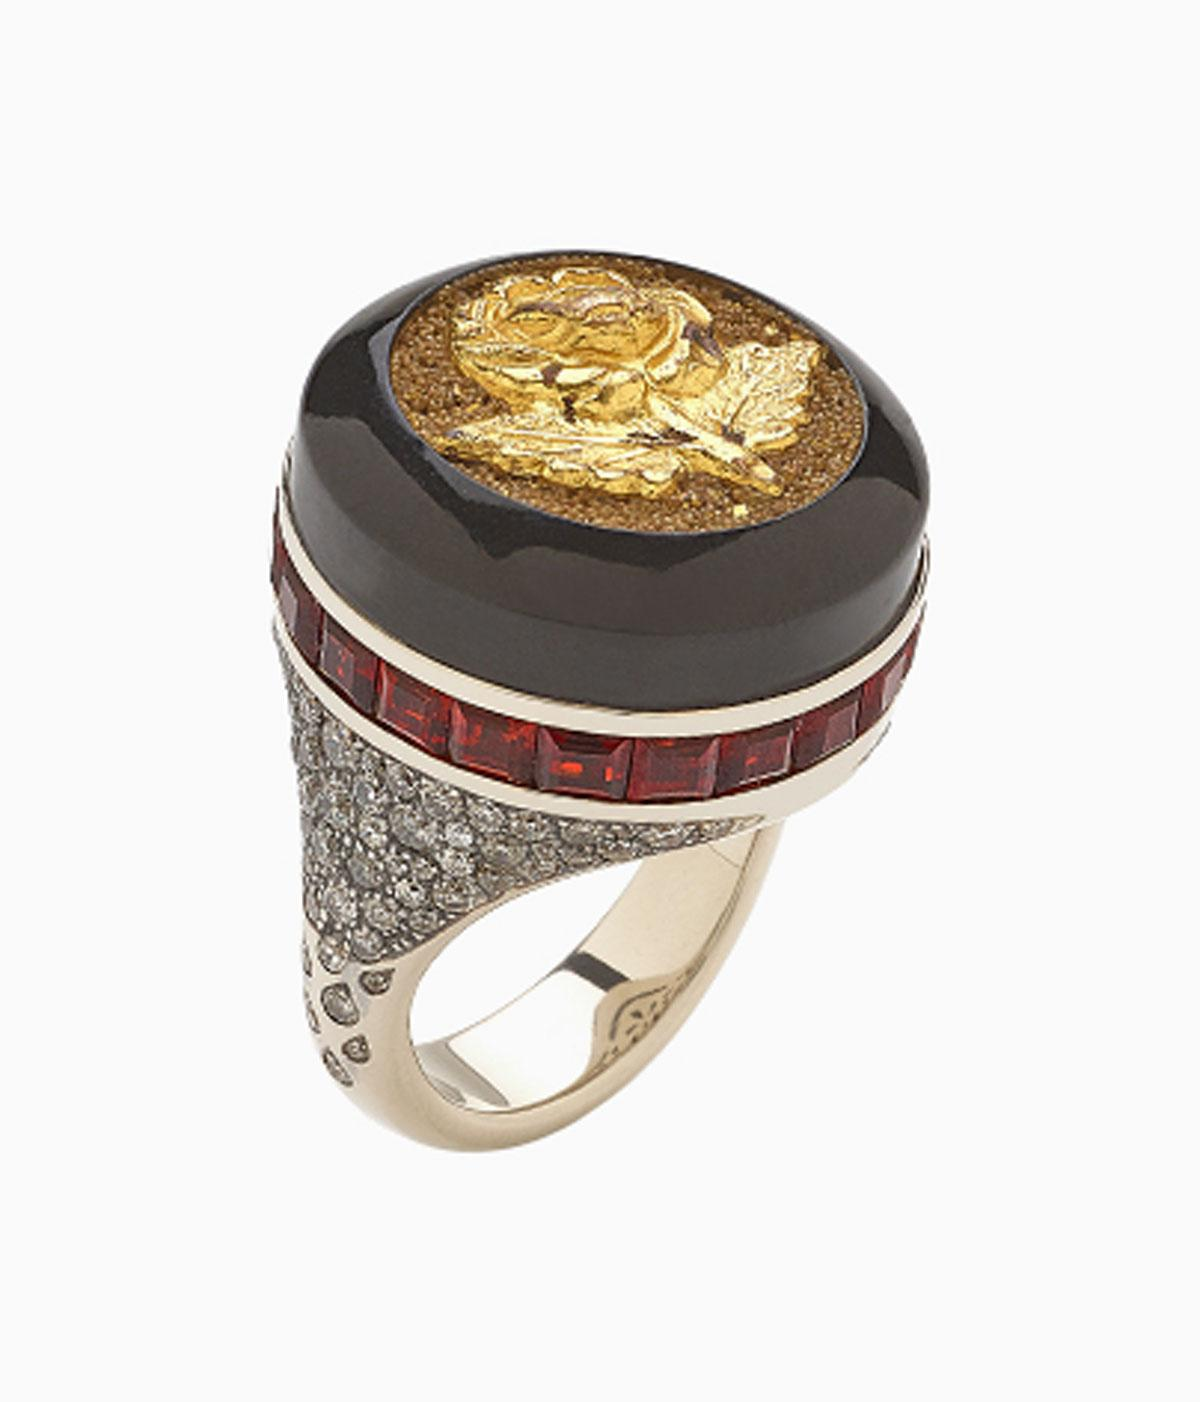 Black and diamond ring with a button set into it